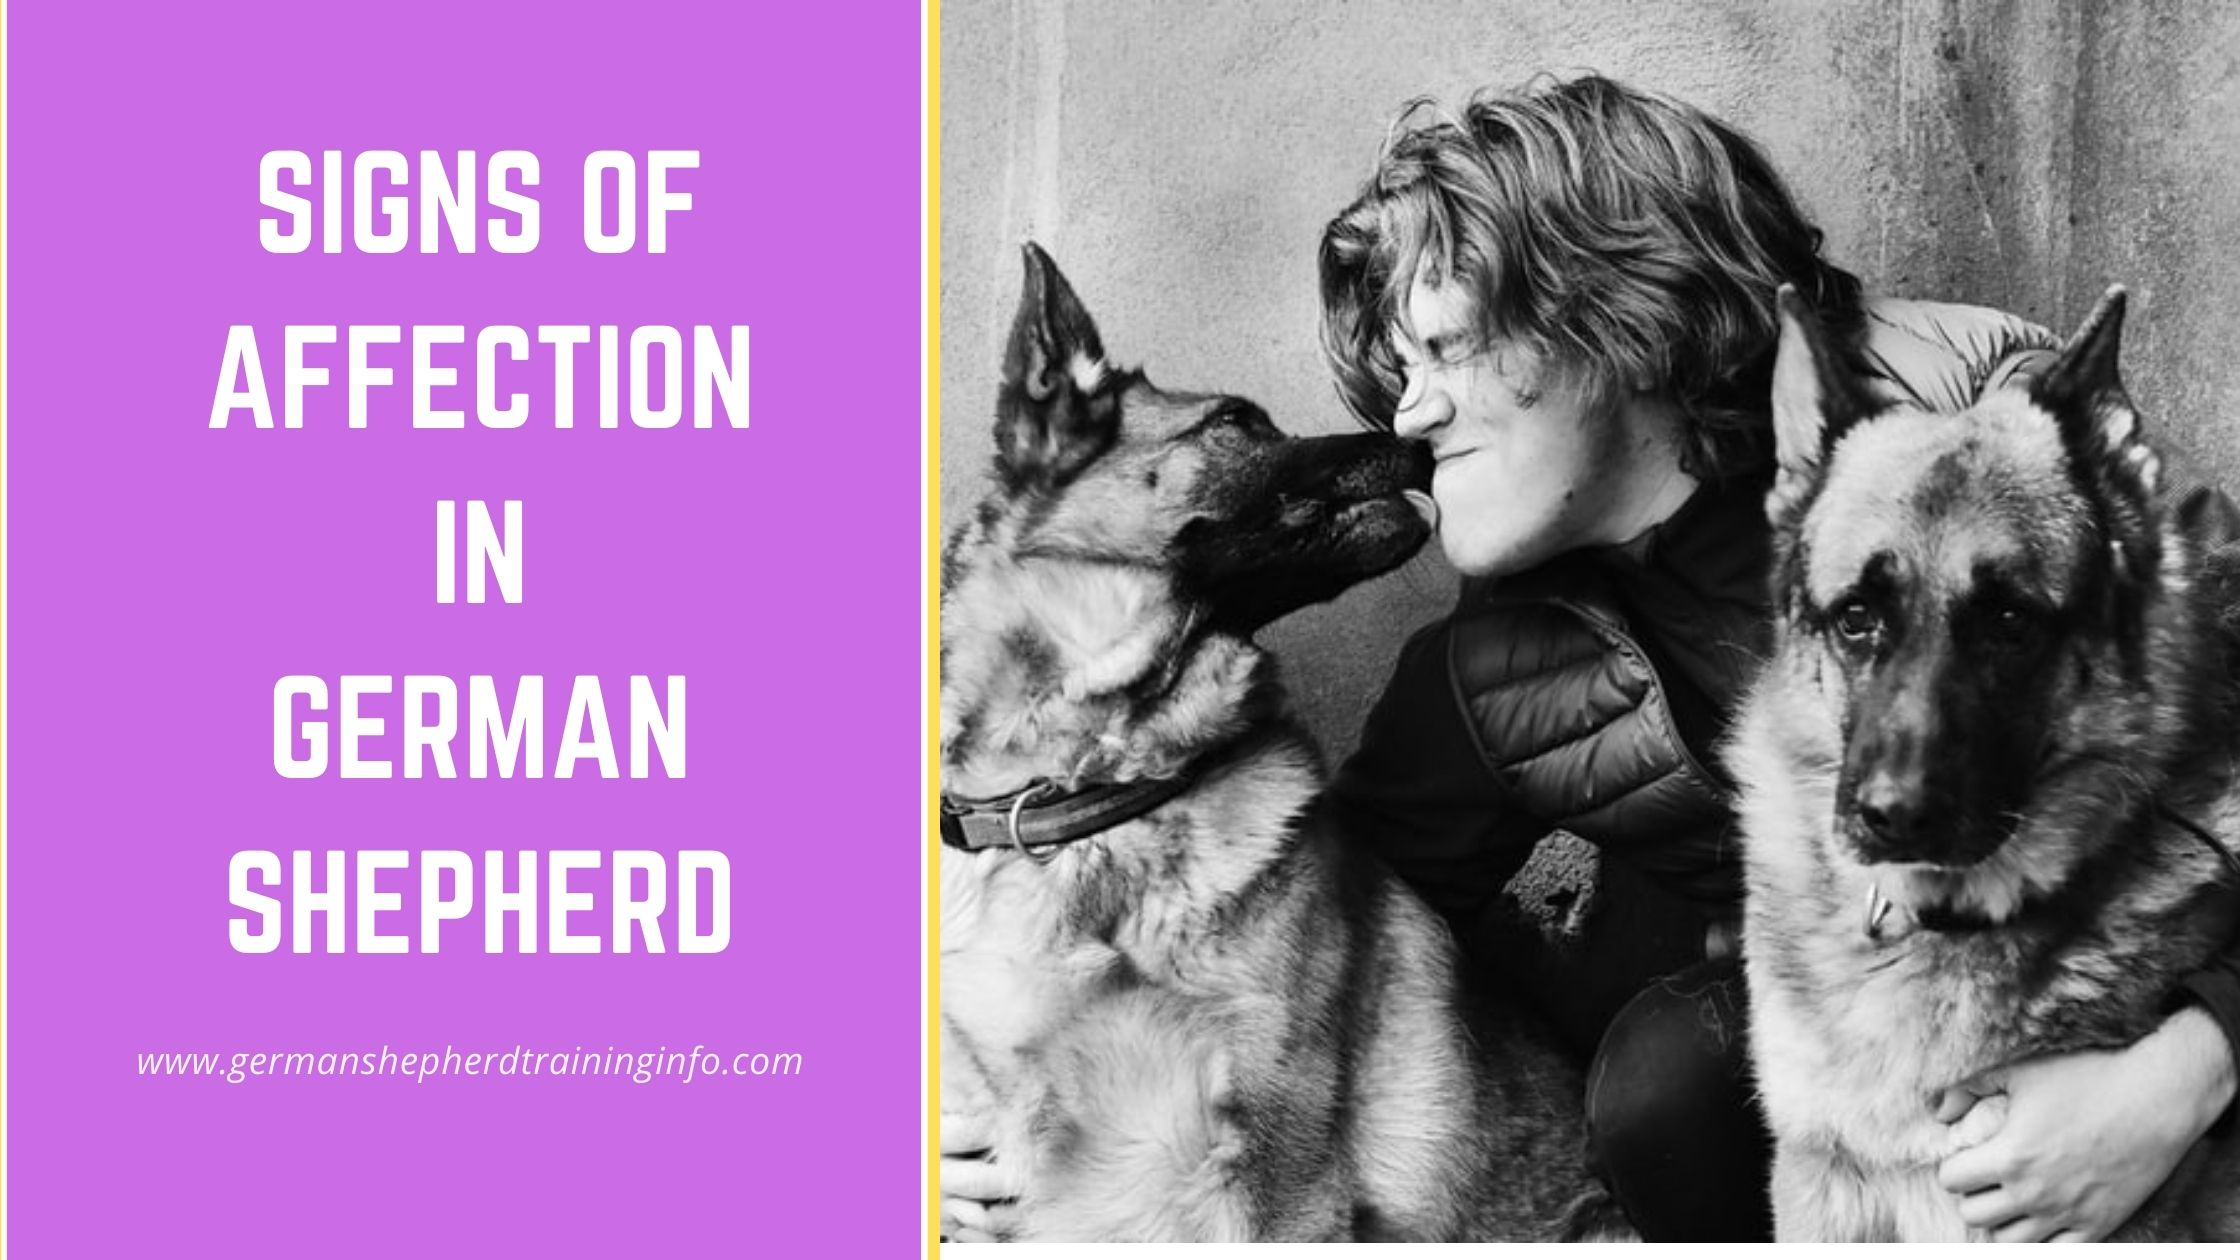 German Shepherd Signs of Affection- How to tell if your GSD loves you?